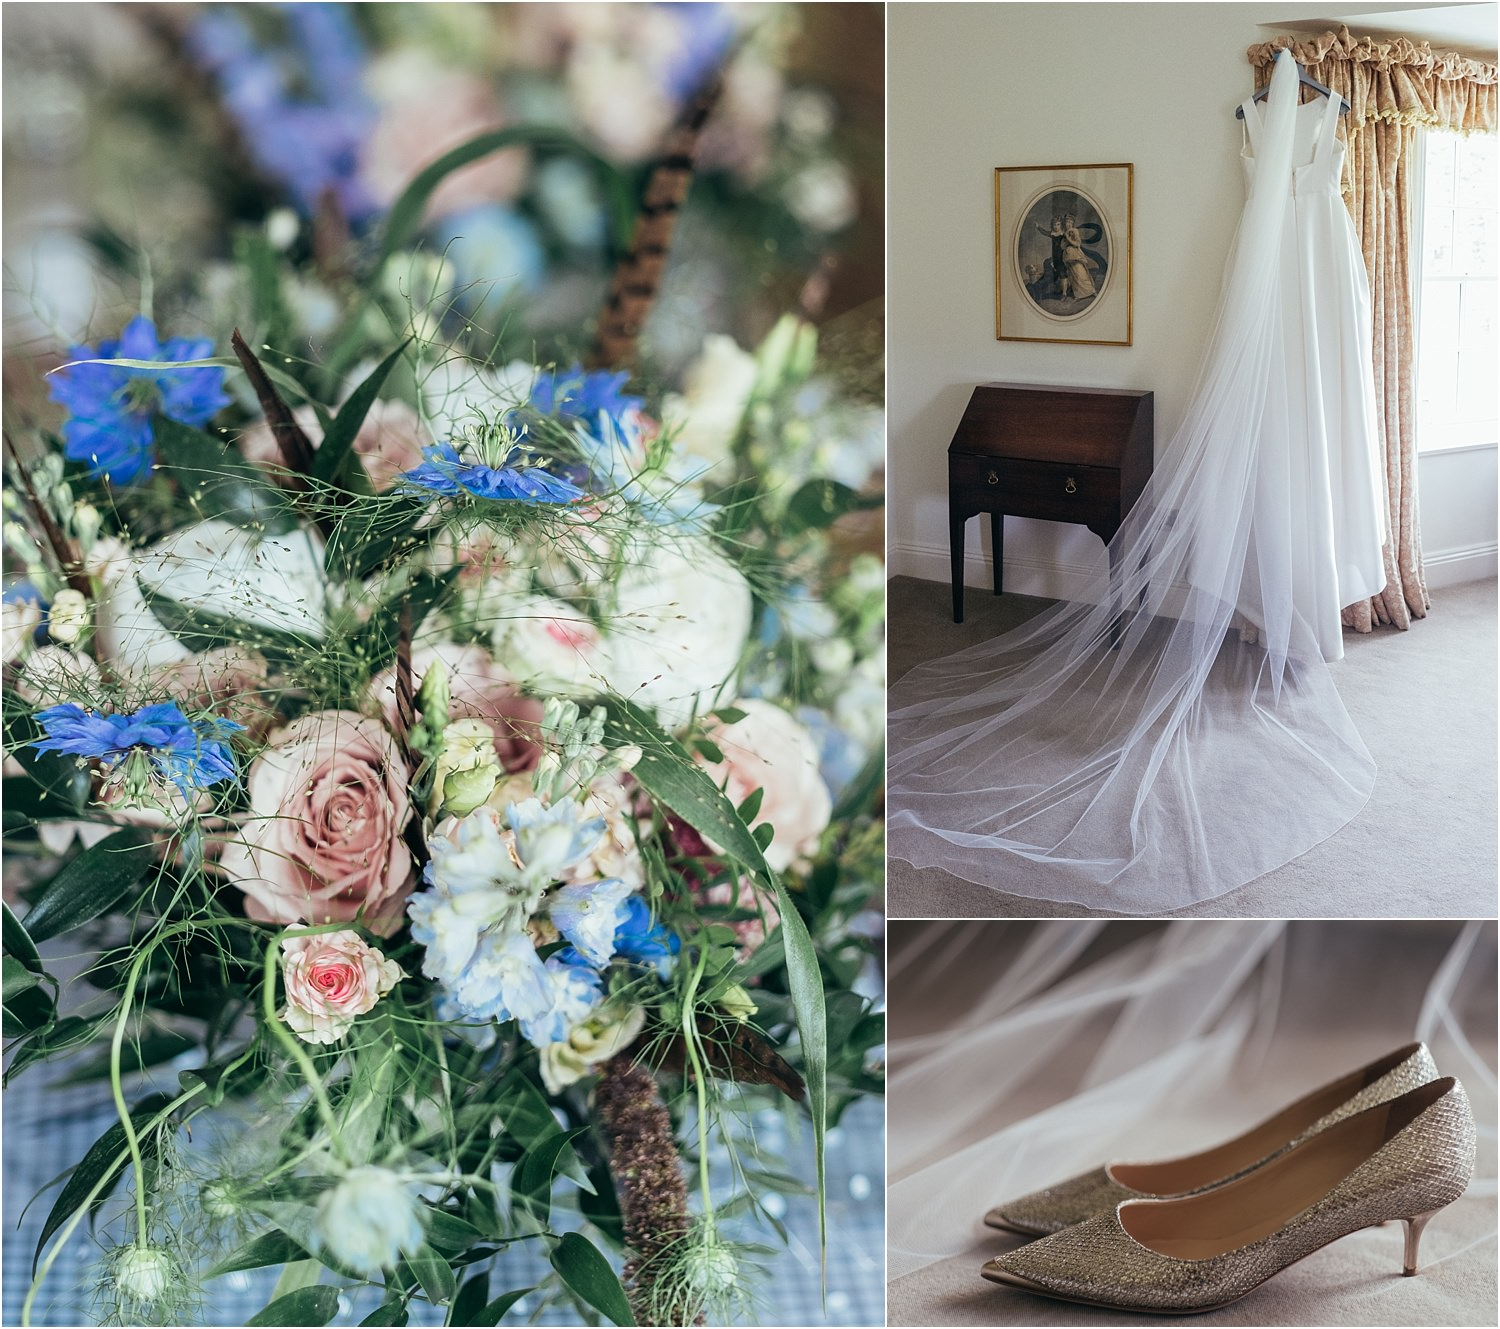 Wedding flowers by The Flower Shop in Clitheroe and Bridal gown by Jesus Peiro for Lancashire wedding at the Inn at Whitewell